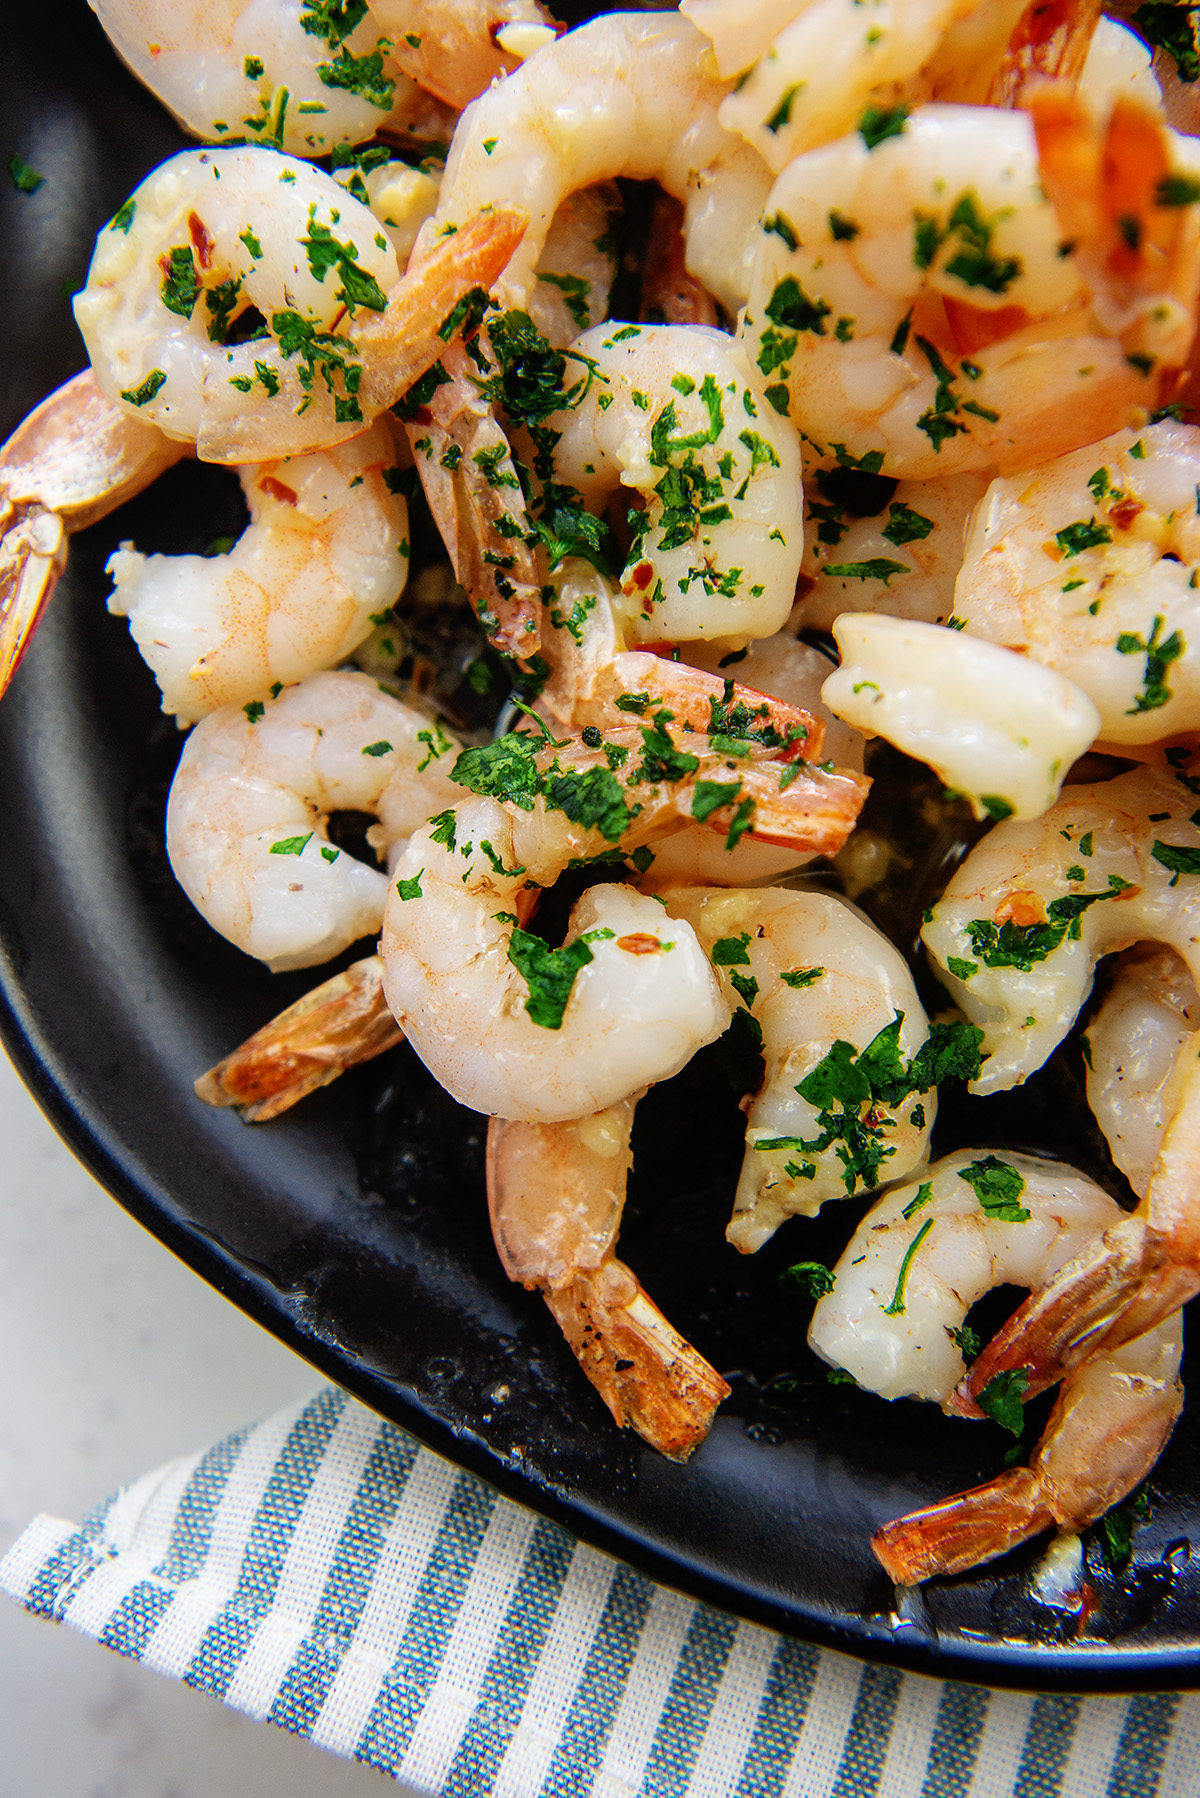 cooked shrimp on black plate.